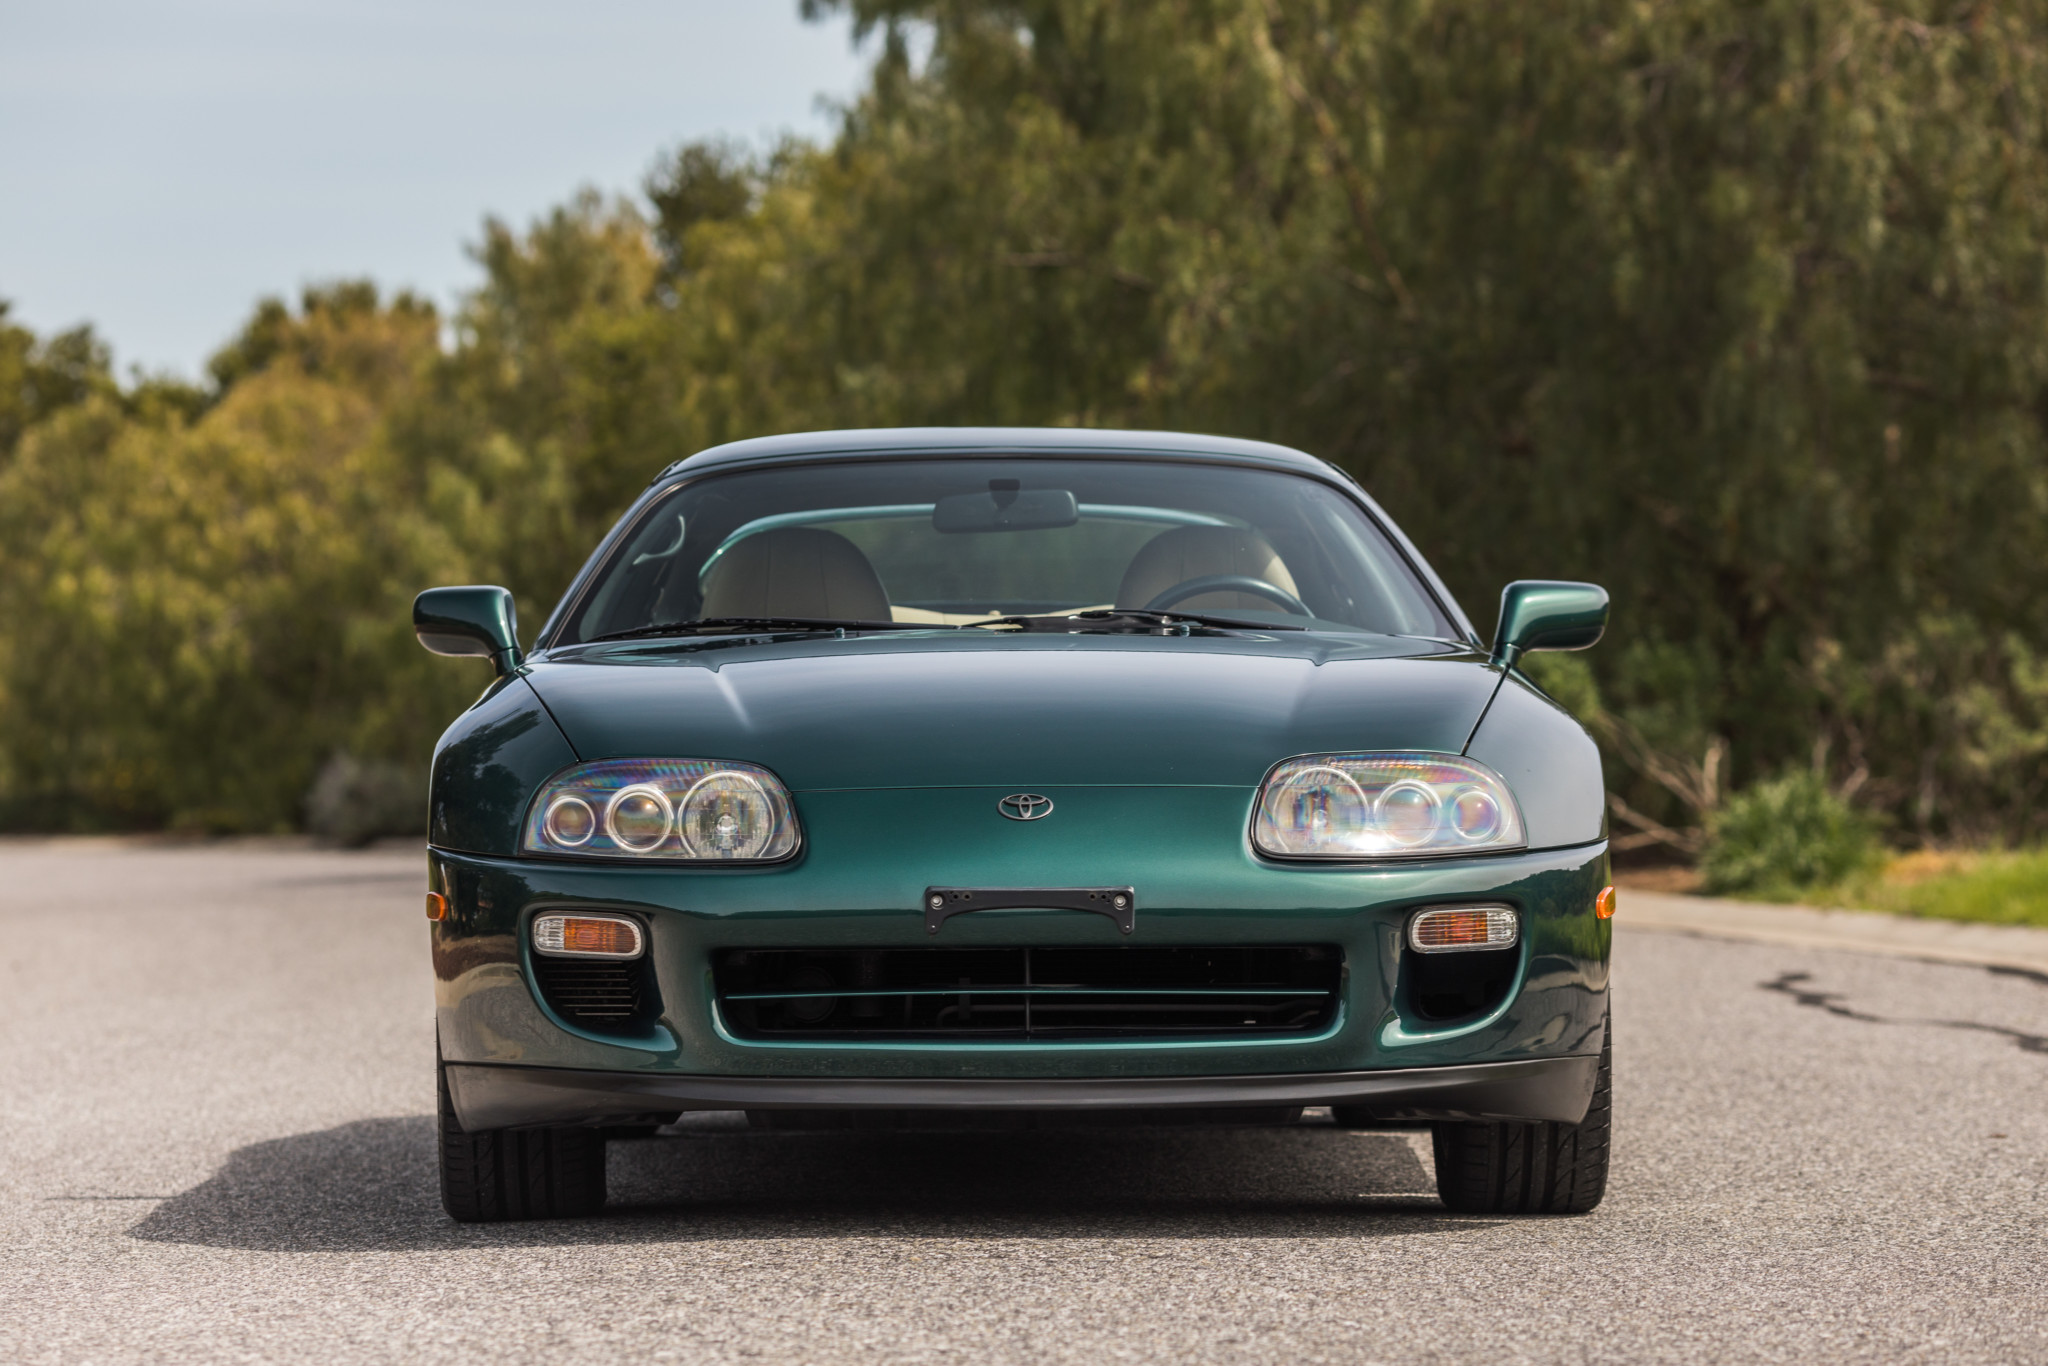 Toyota-Supra-Twin-Turbo-1997-sale-6